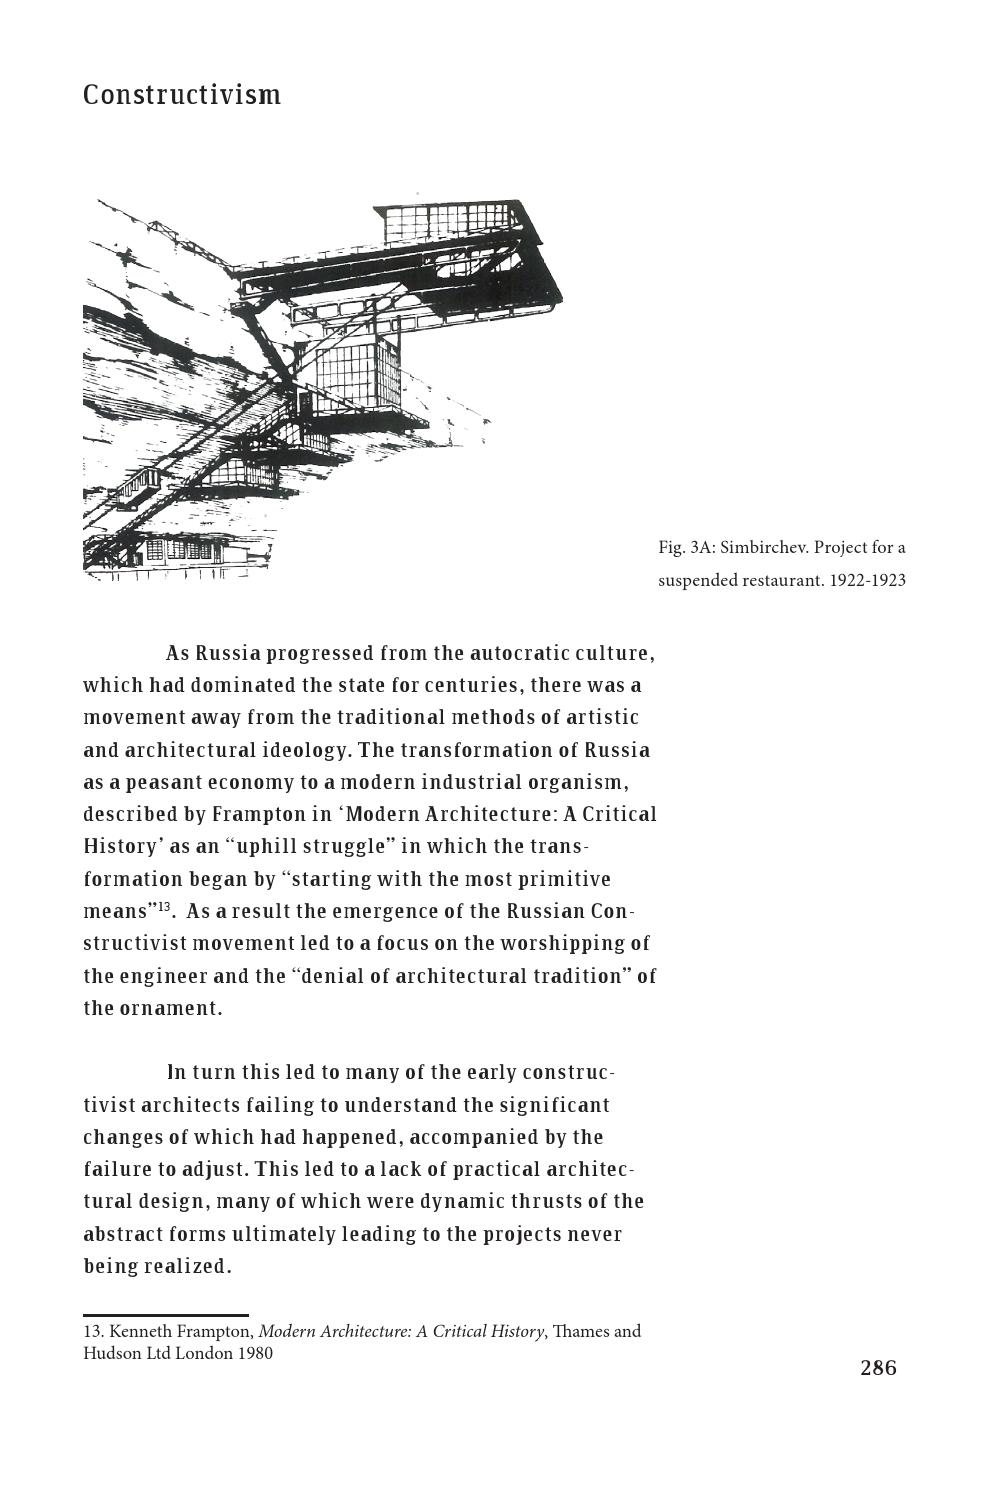 Modern Architecture A Critical History 2013 book of third year dissertations, saul, volume 1saul